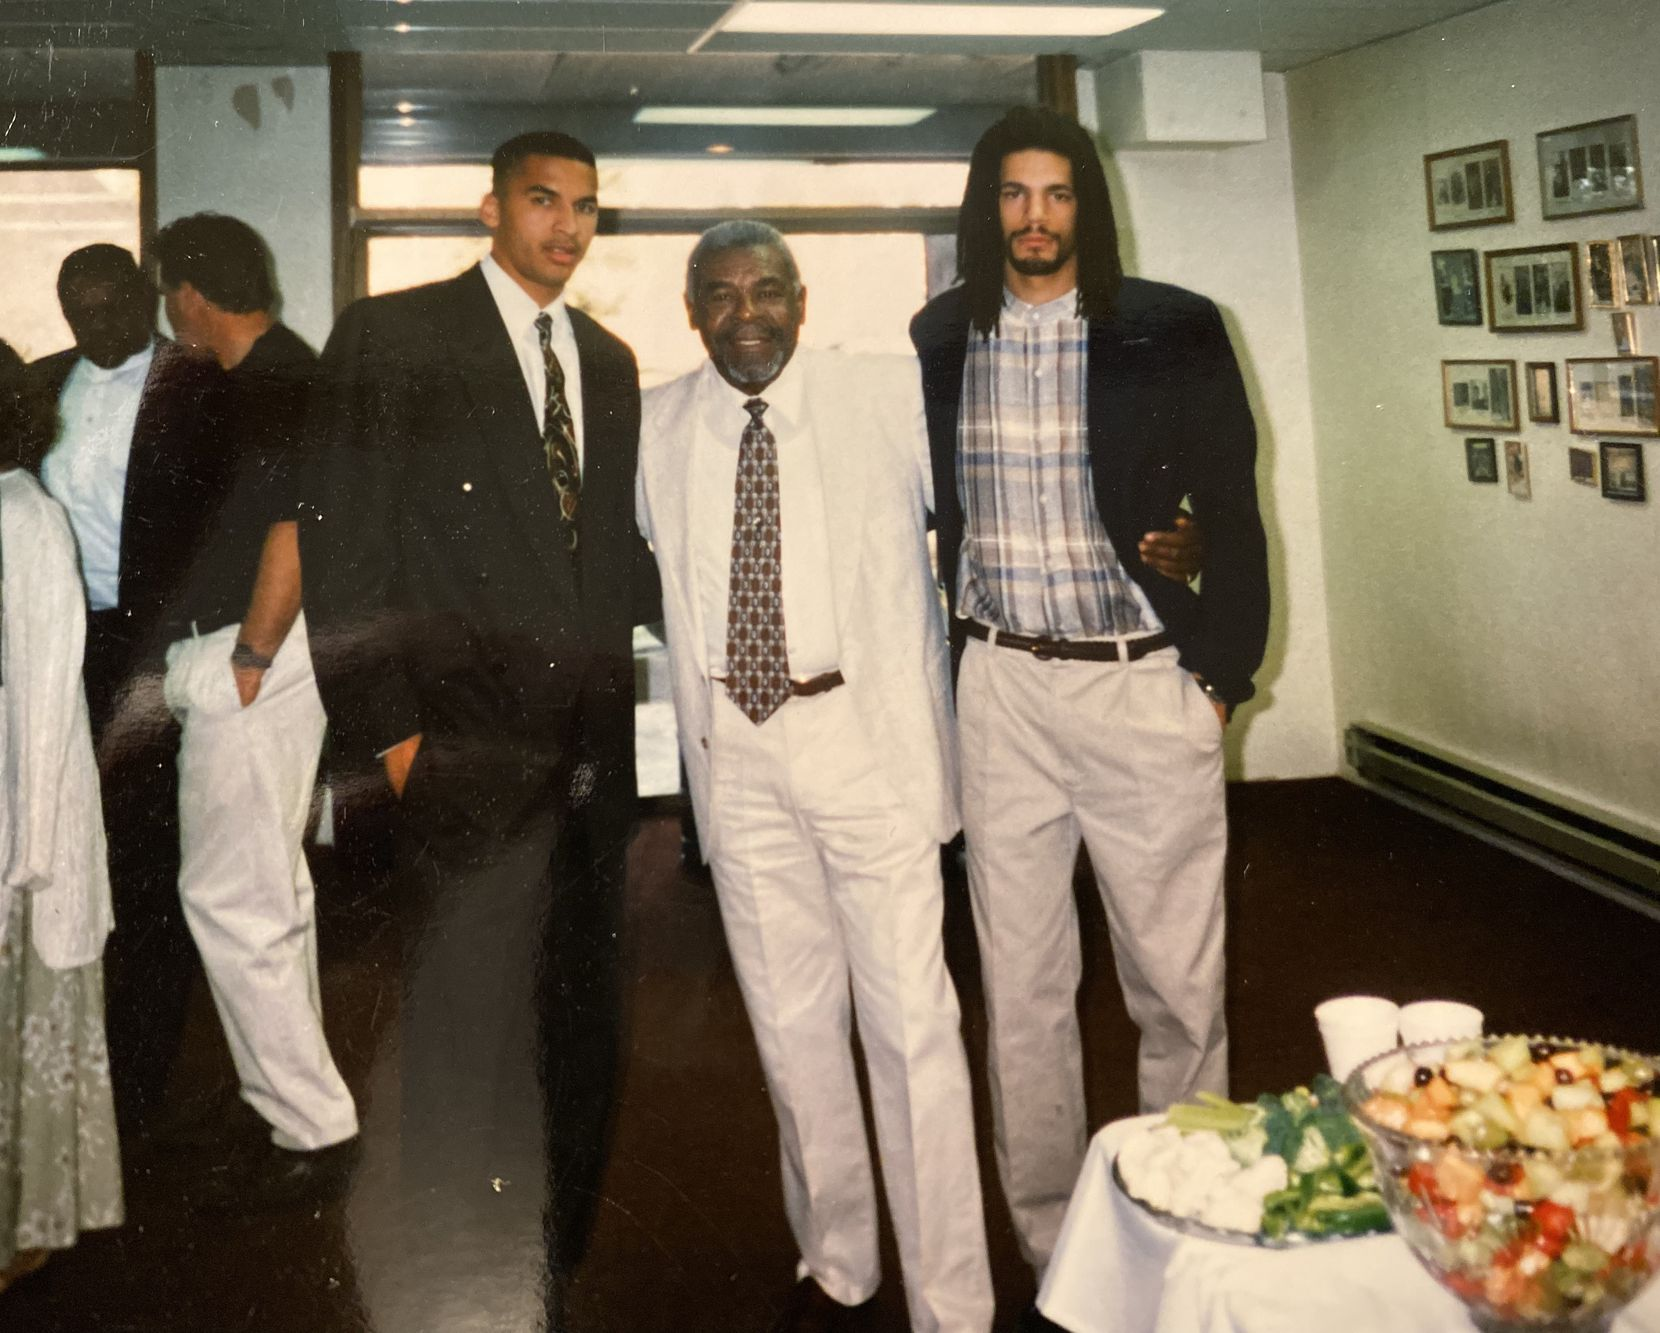 New Mavericks general manager Nico Harrison (left) pictured with his father Steve Harrison and brother Brandon Harrison. Steve Harrison died of cancer in 2016.